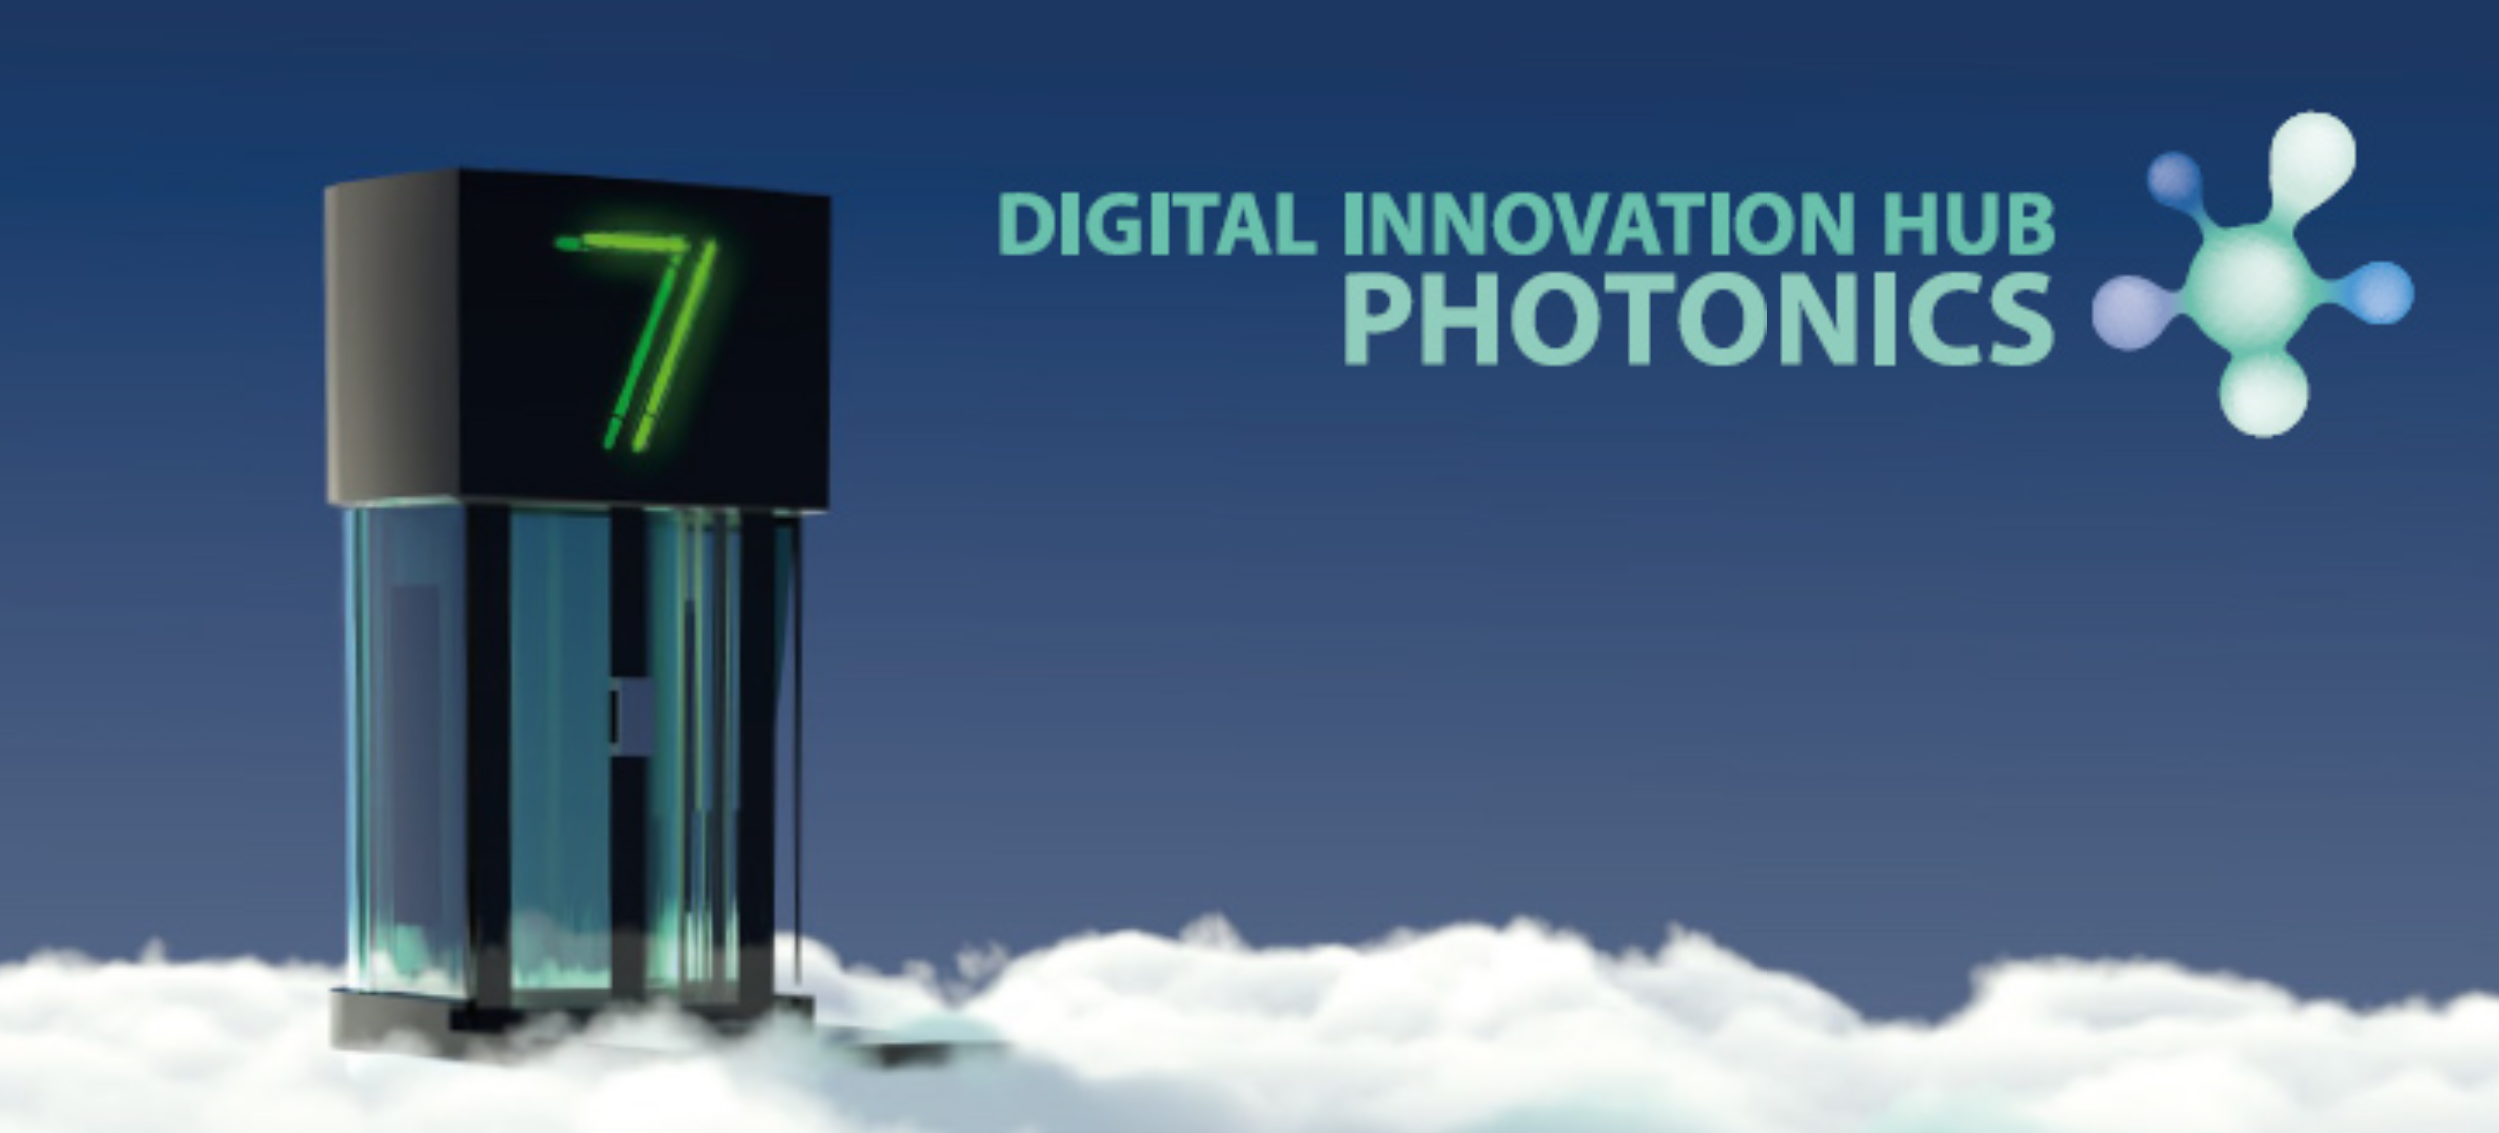 The Digital Innovation Hub Photonics (DIHP) in Thuringia (Germany) invites all optics and photonics enthusiasts with exciting project ideas to the Digital Pitch 2021.